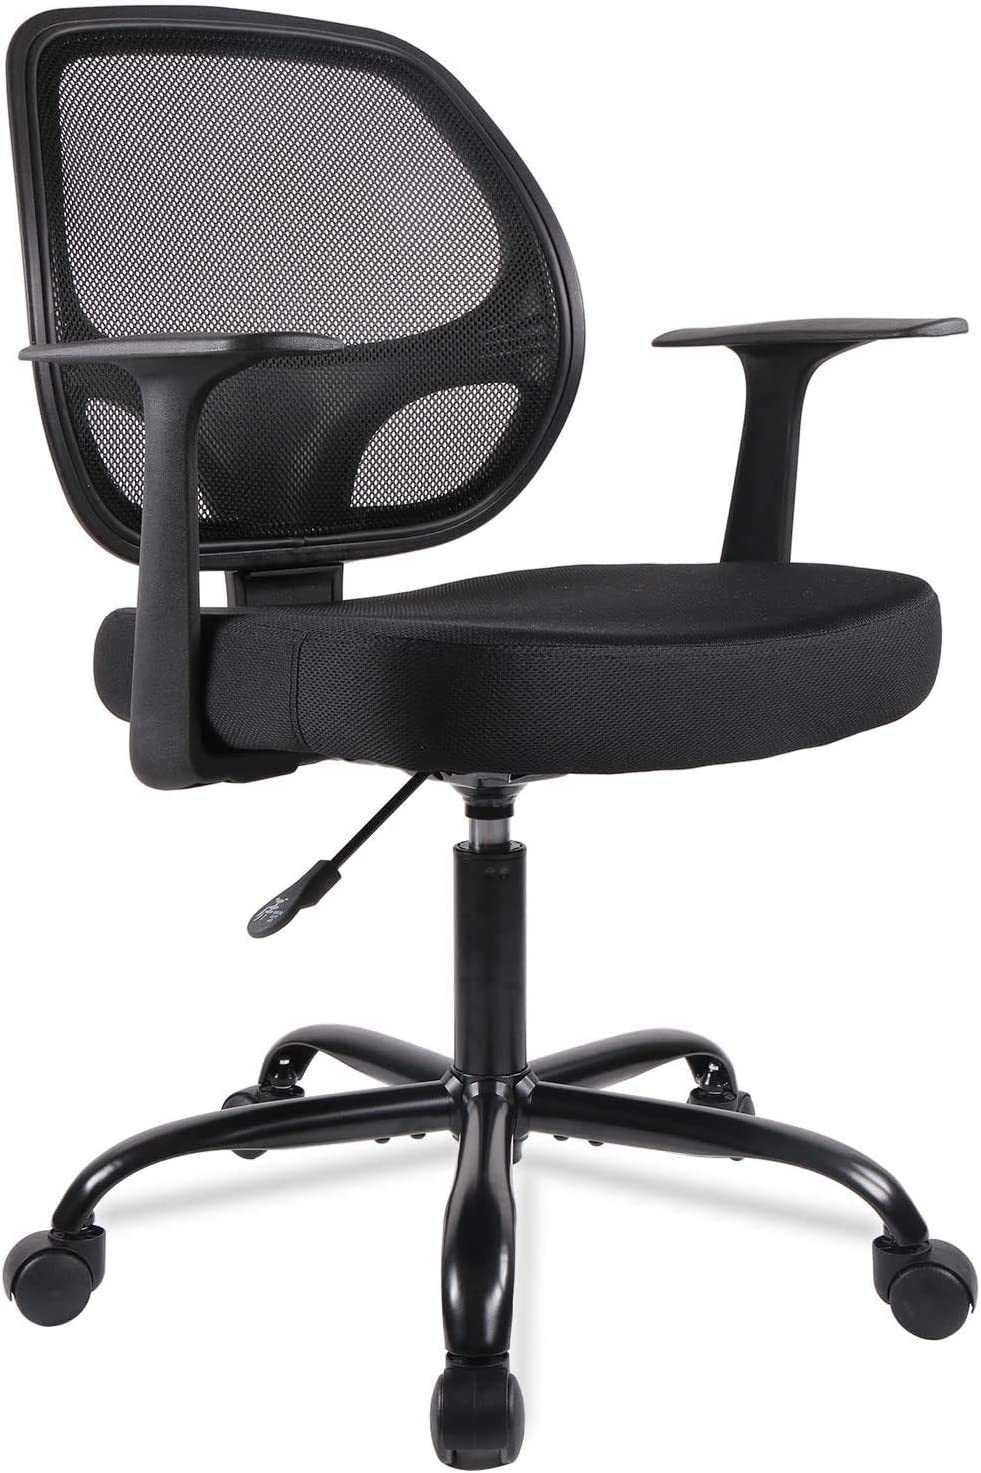 Mid-Back Desk Office Chair Task Chair with Armrests - Mesh Back, Swivel Chair